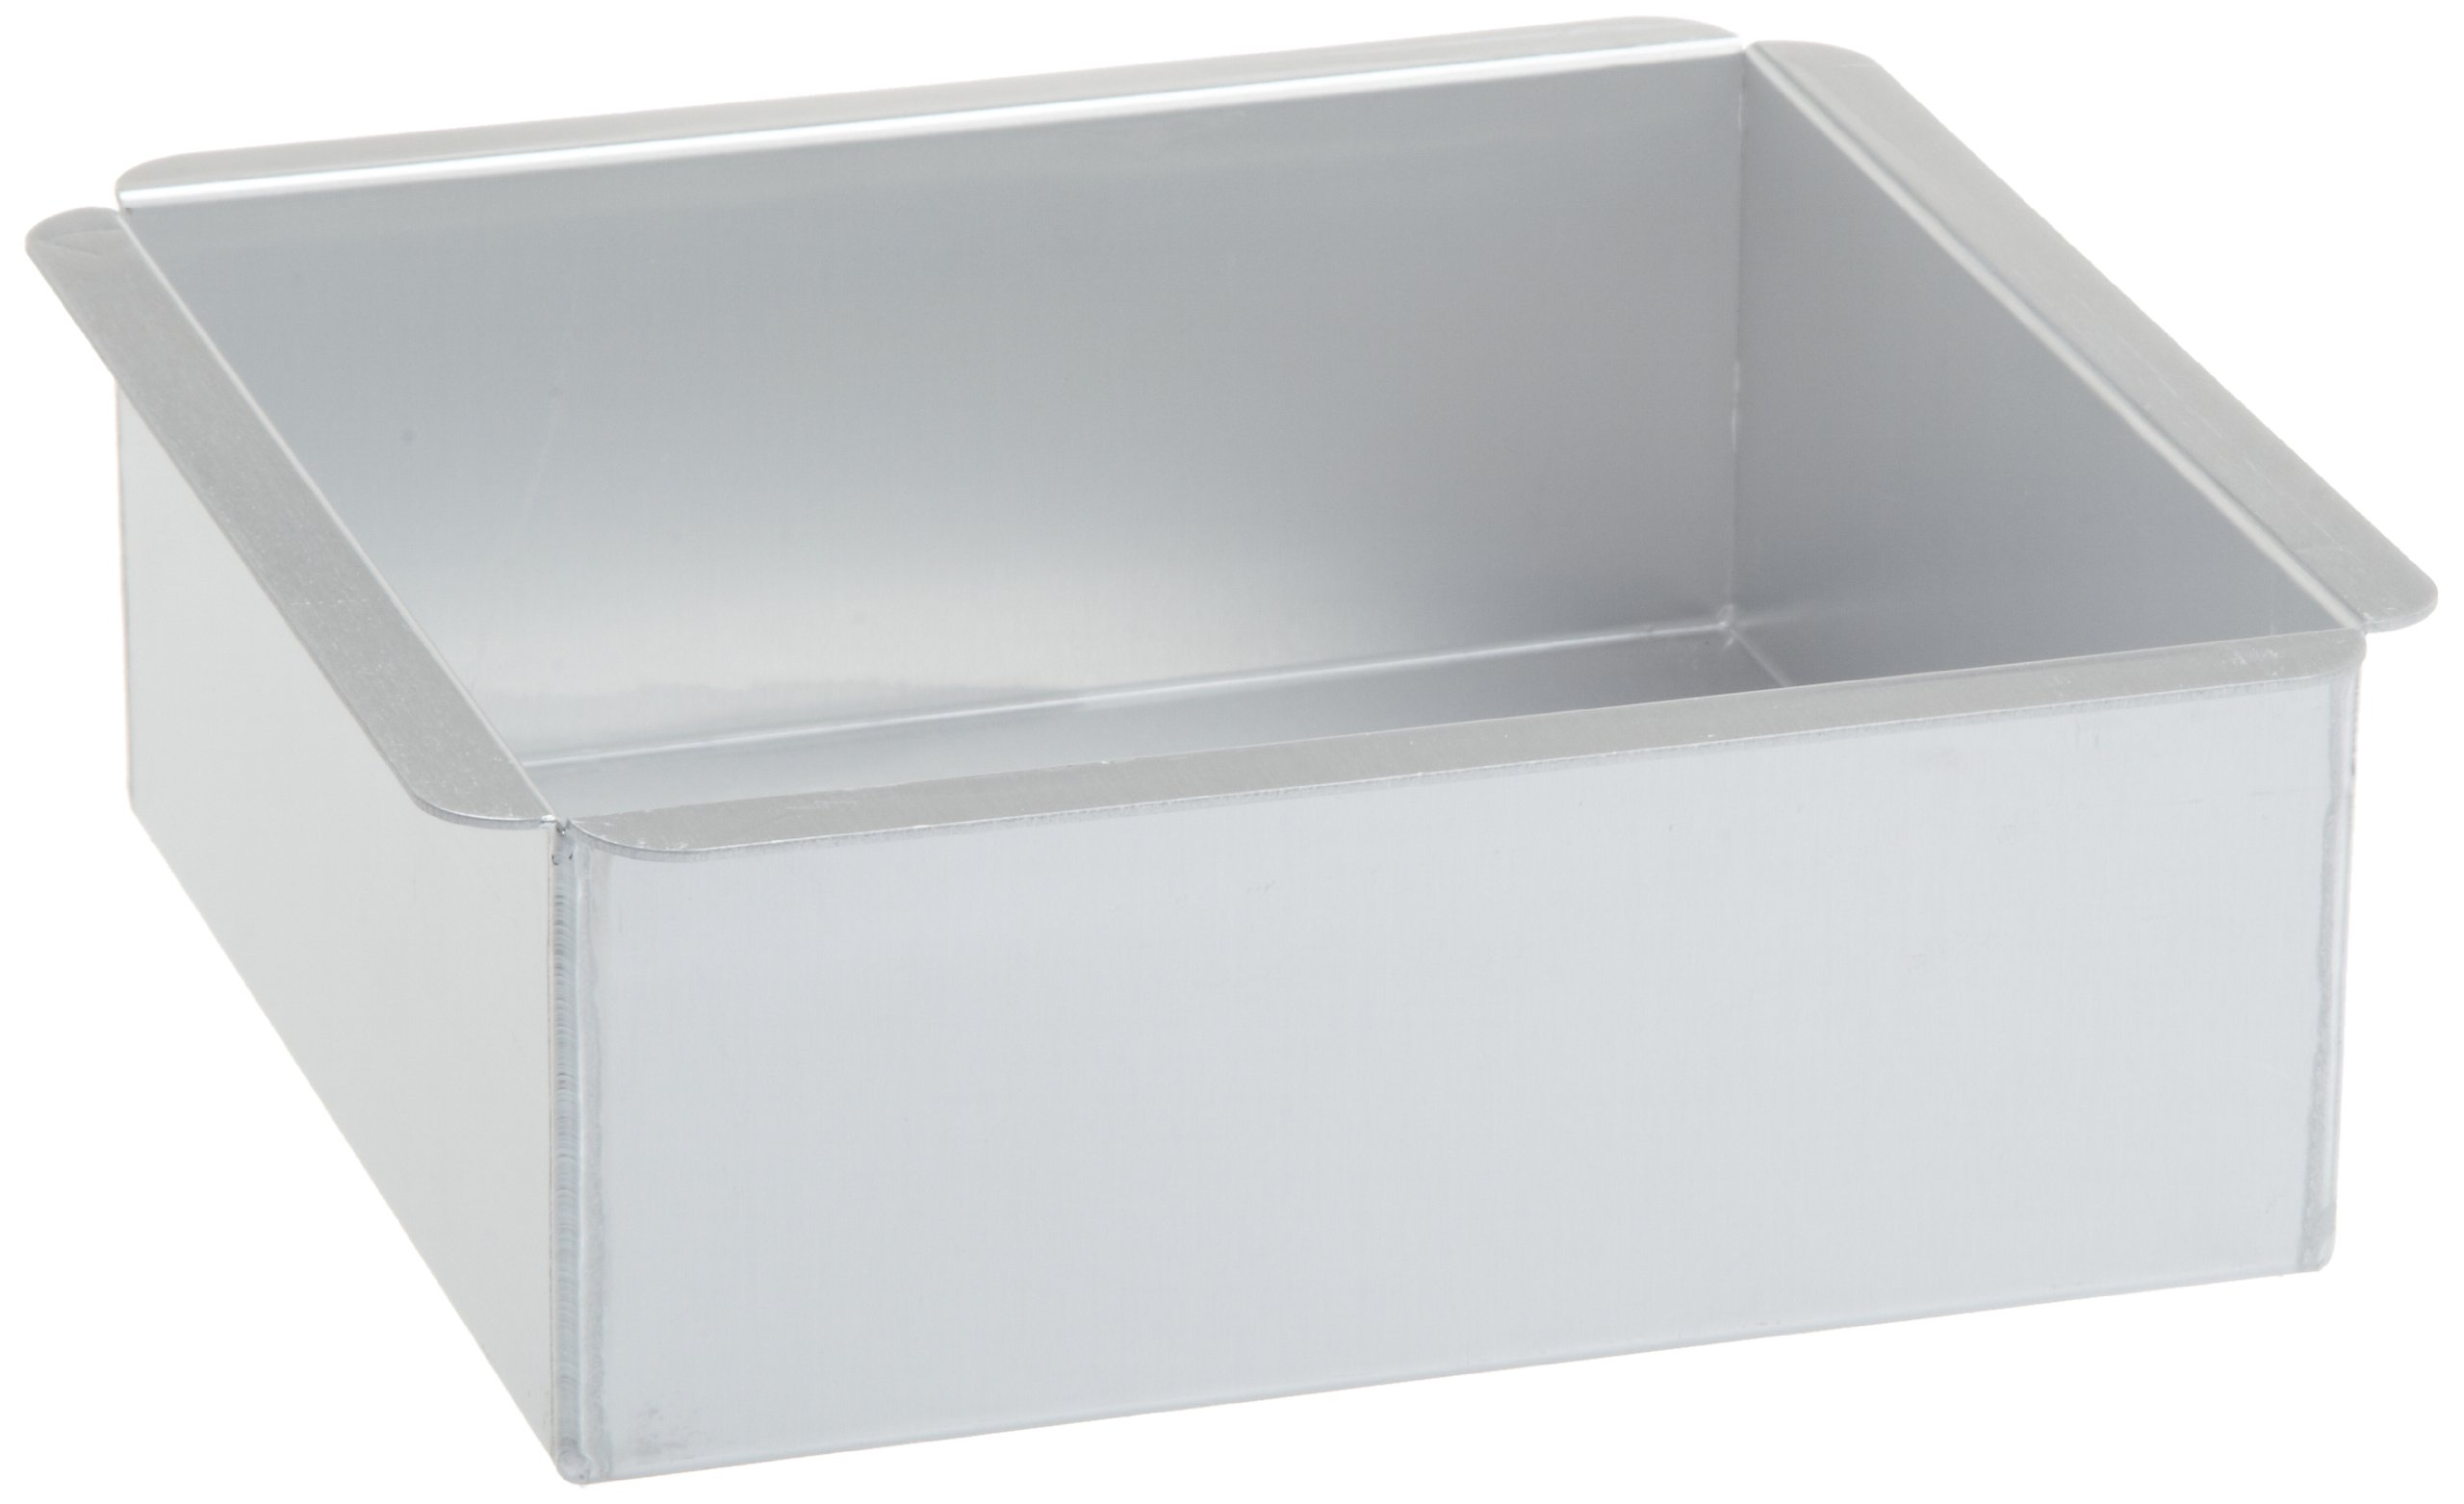 Ateco 8 by 8 by 3-Inch Professional Square Baking Pan